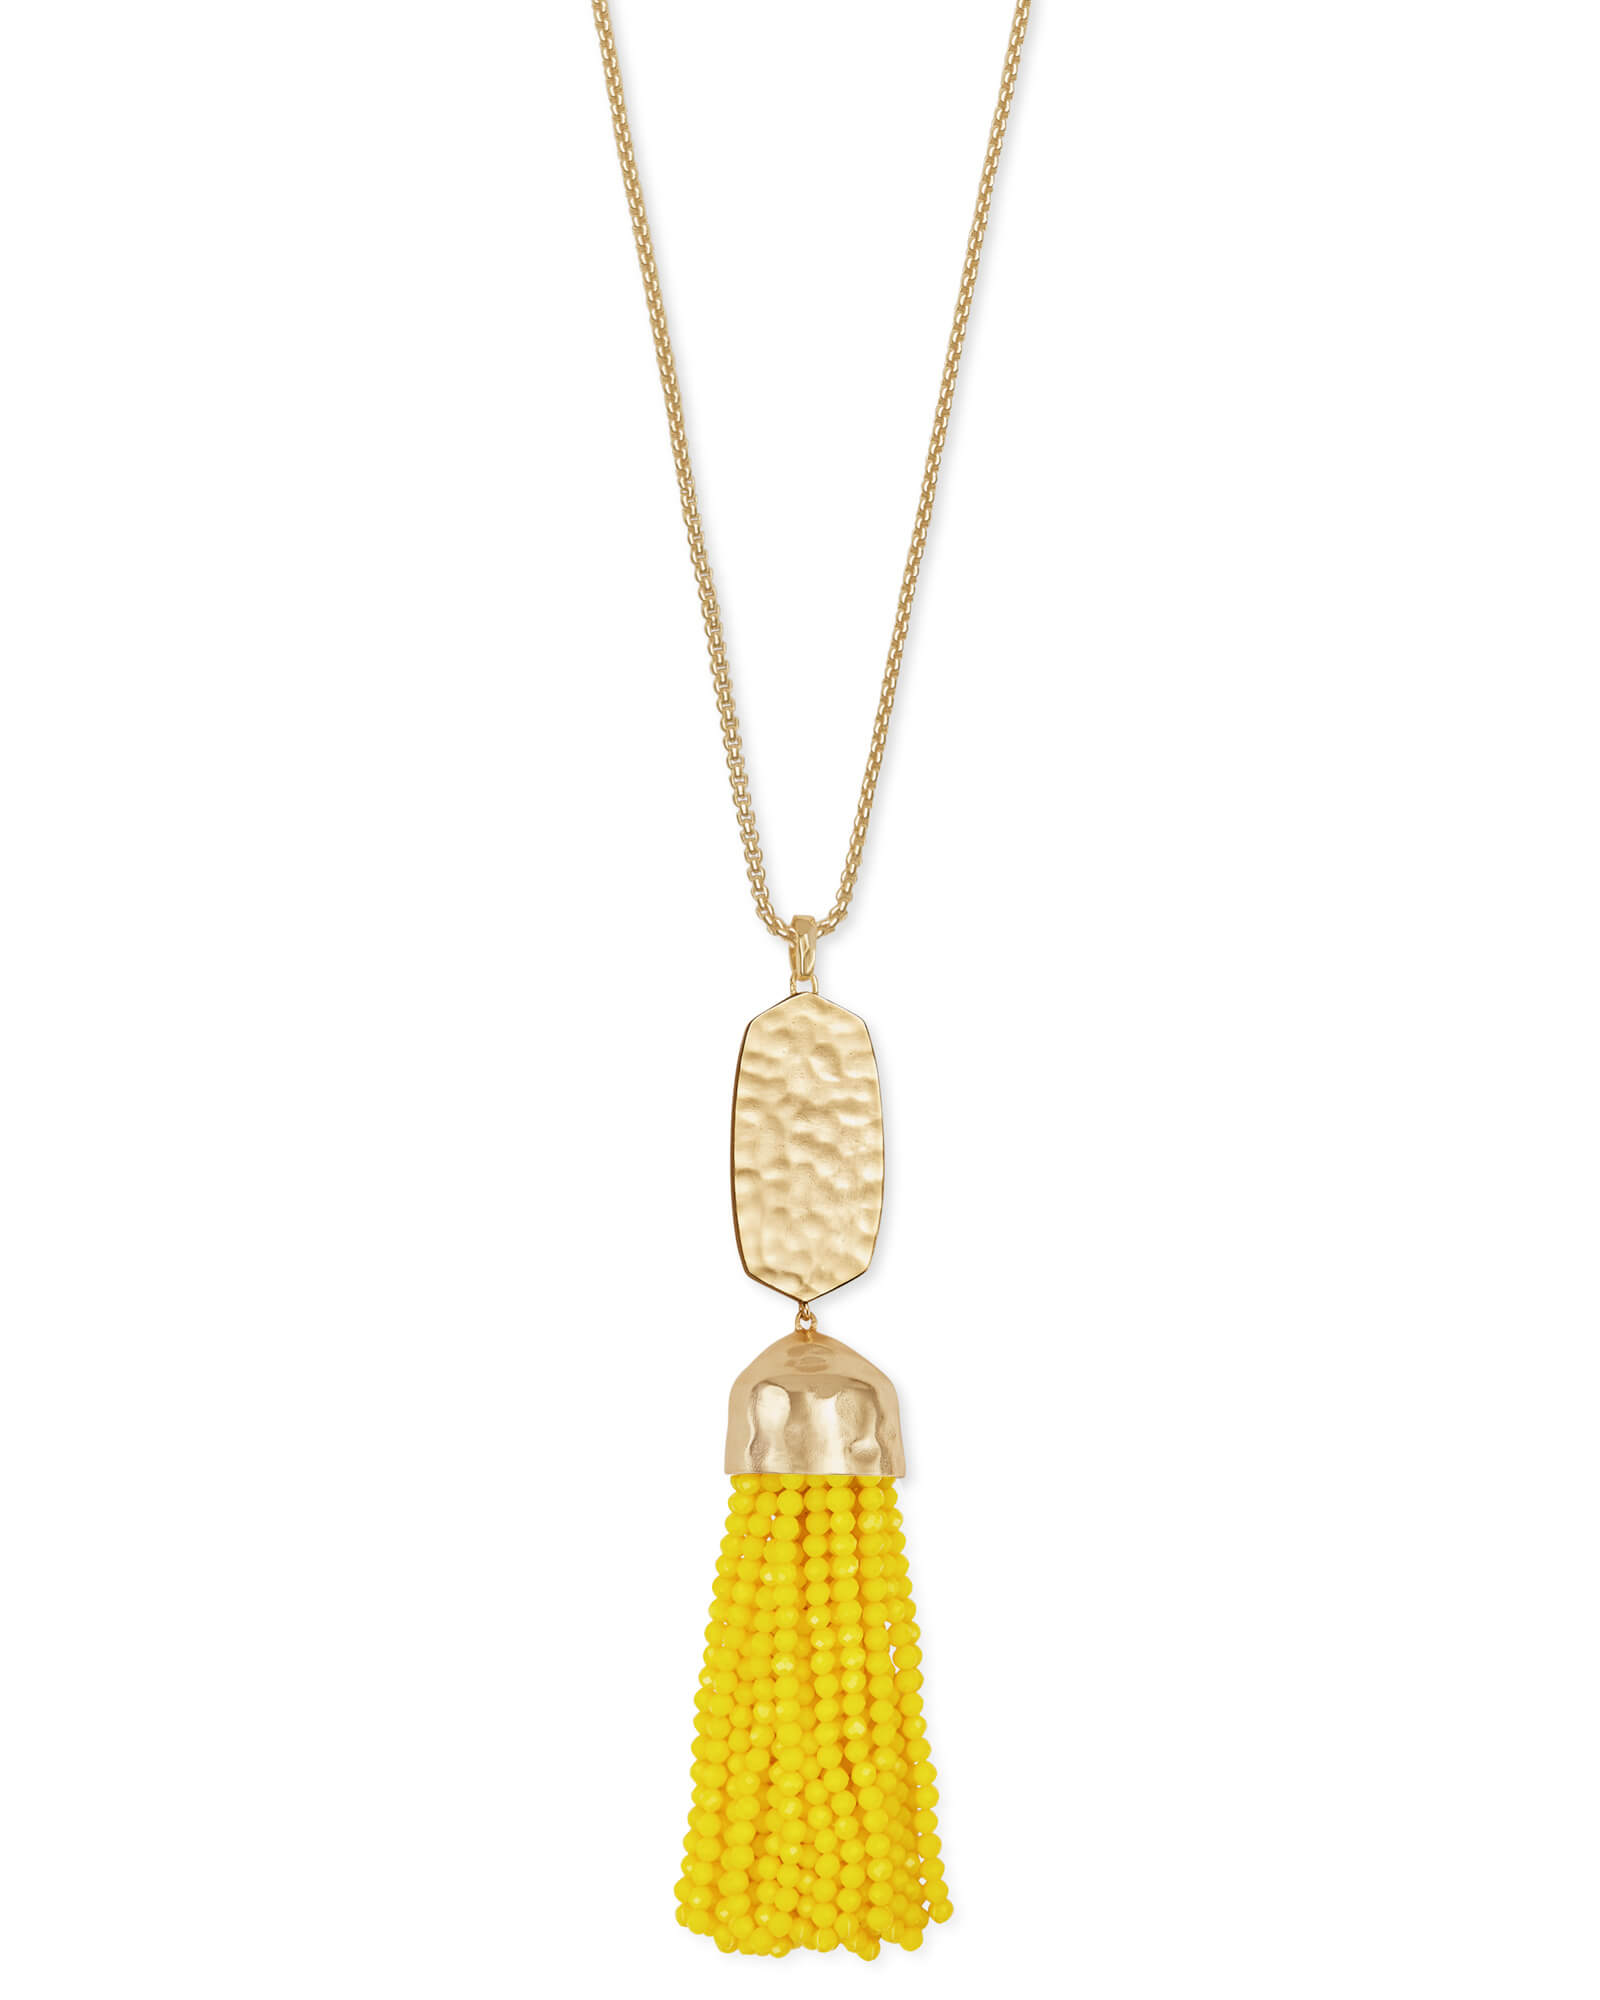 Monroe Gold Long Pendant Necklace in Yellow Opaque Glass